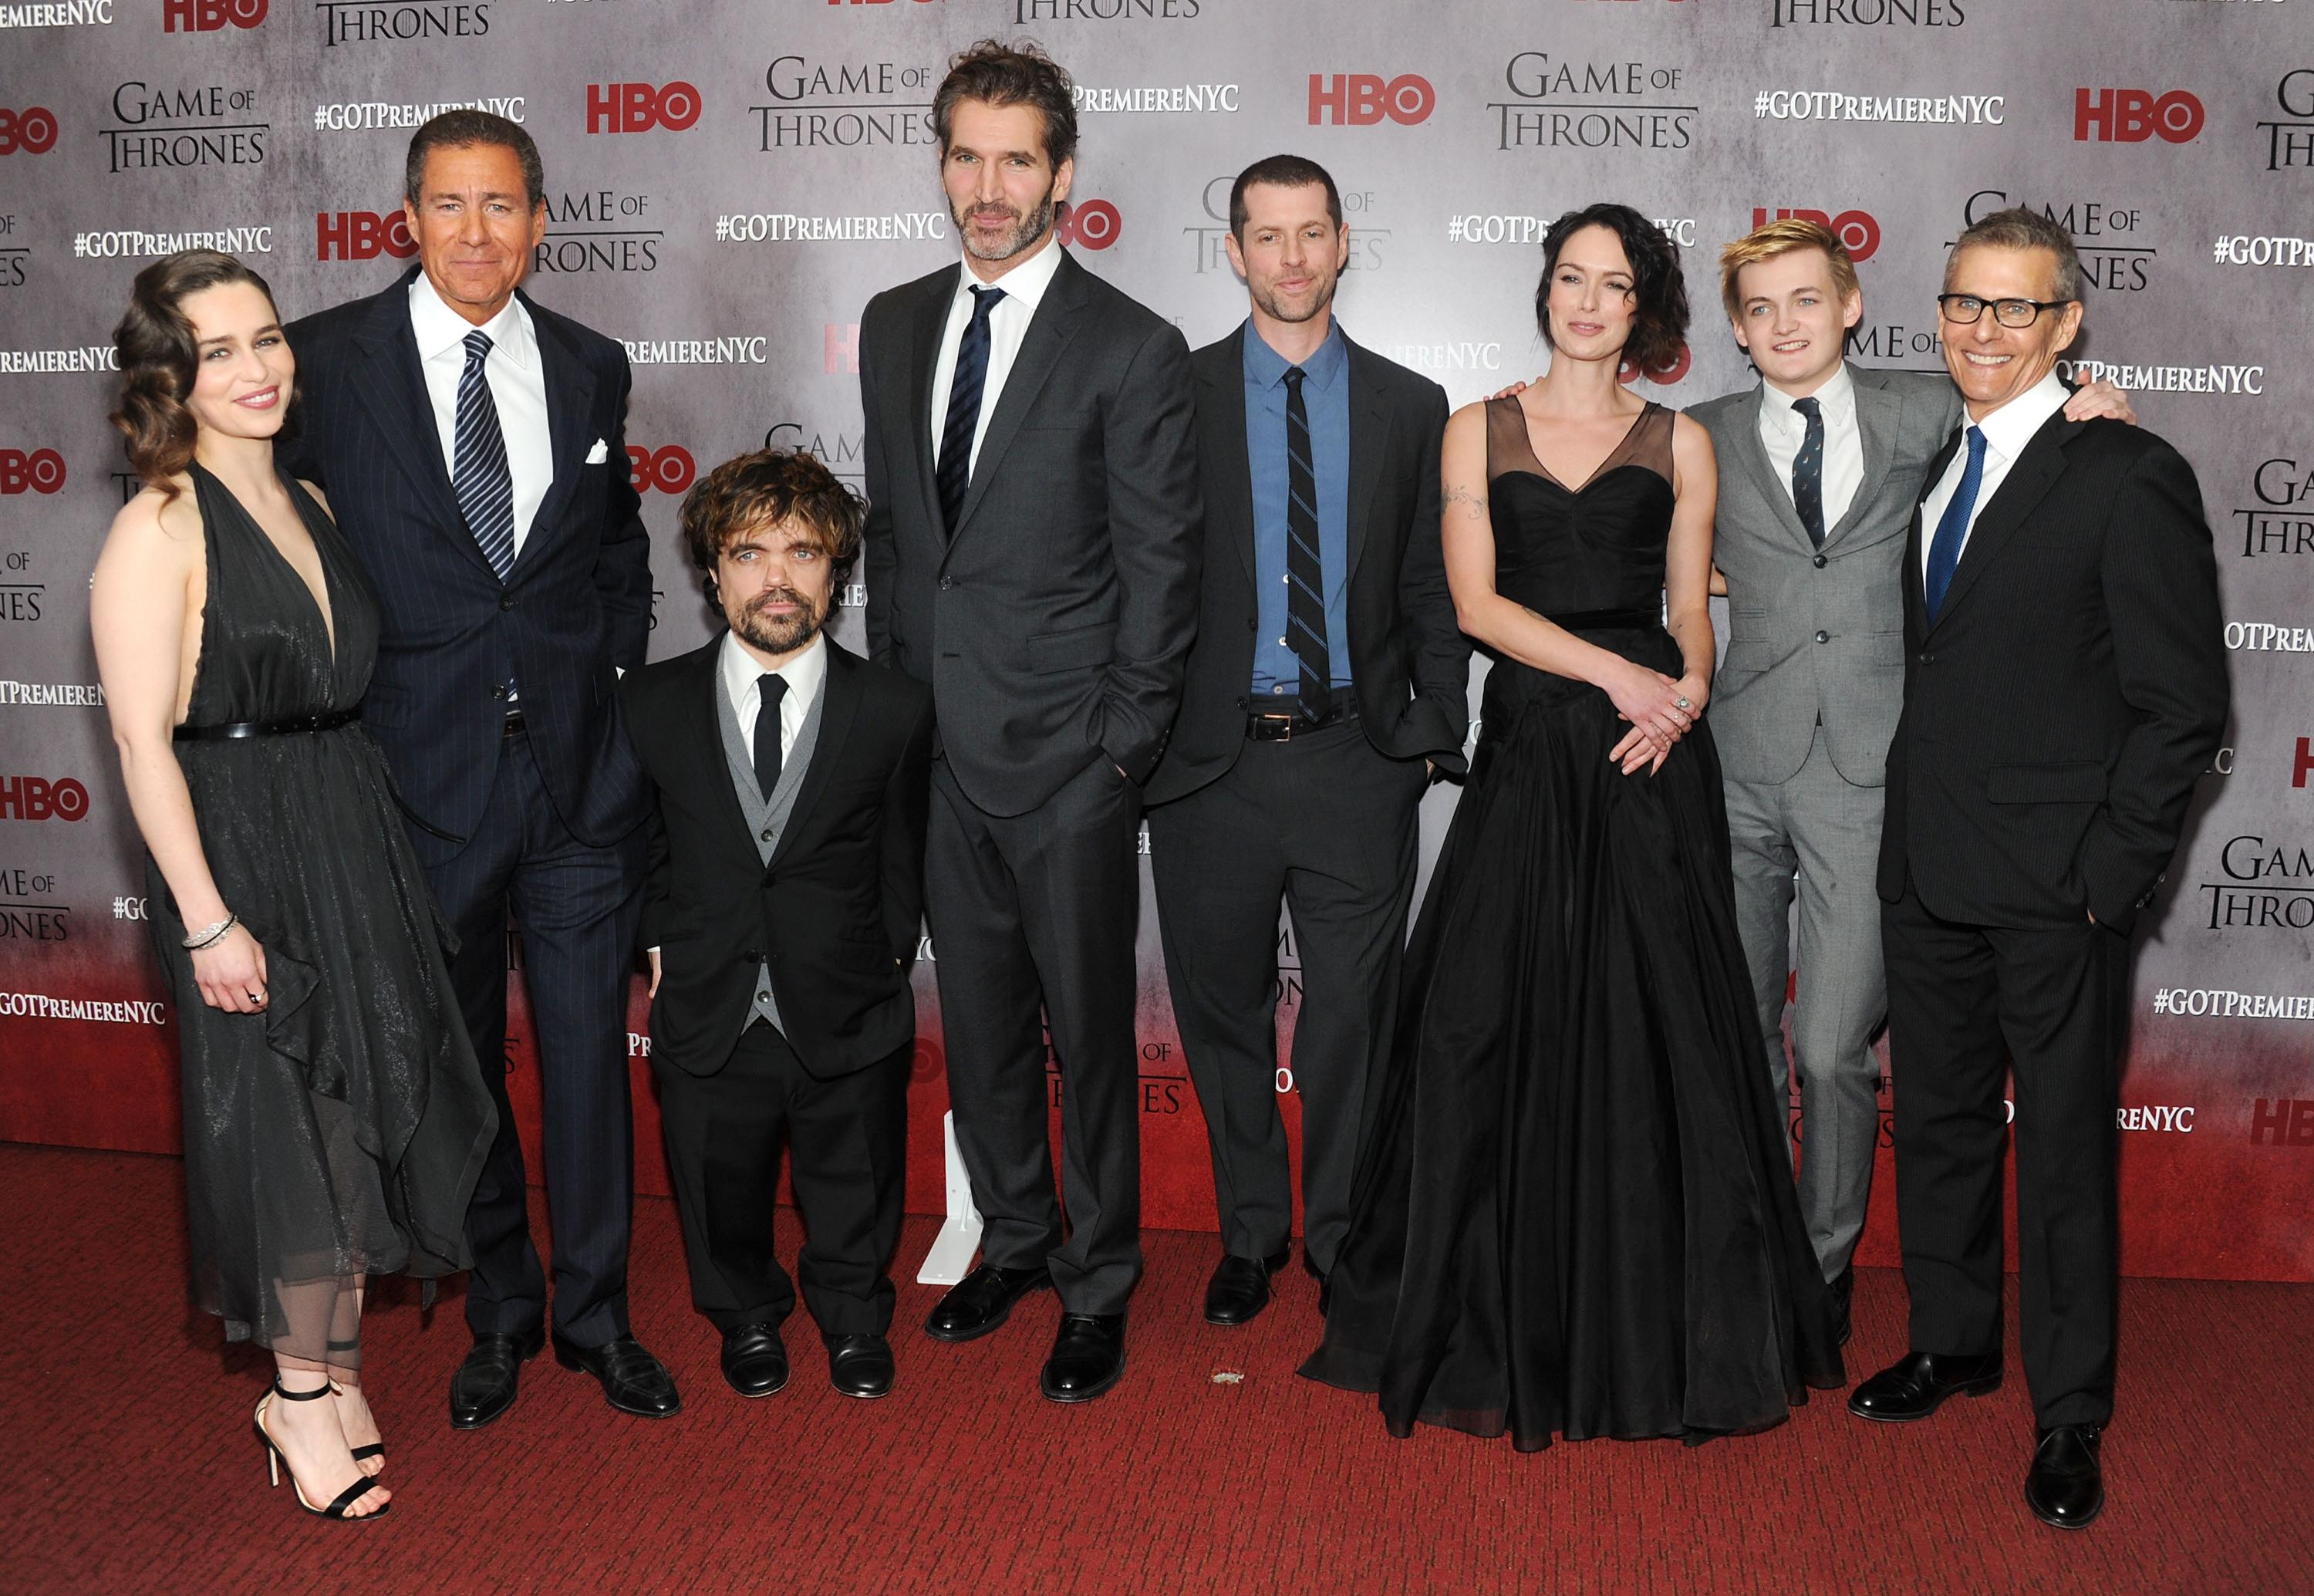 'Game of Thrones' Cast on Season 4's OMG Moments: 'There ...Game Of Thrones Cast Season 4 Cast